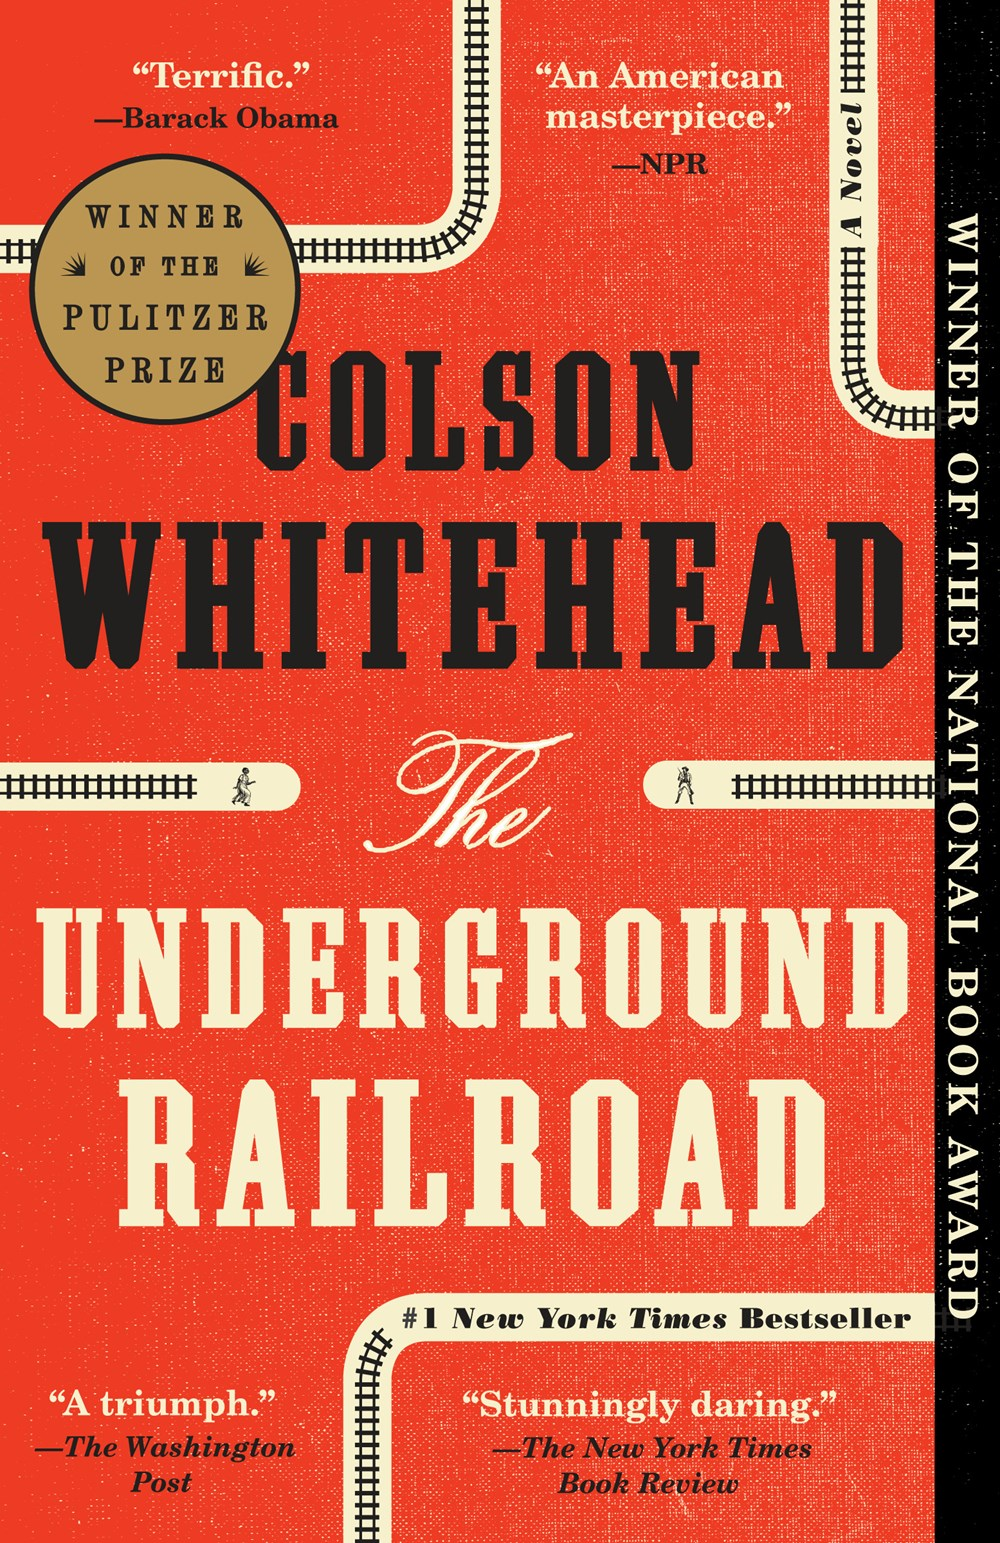 A New Trailer for 'The Underground Railroad' | Book Pulse